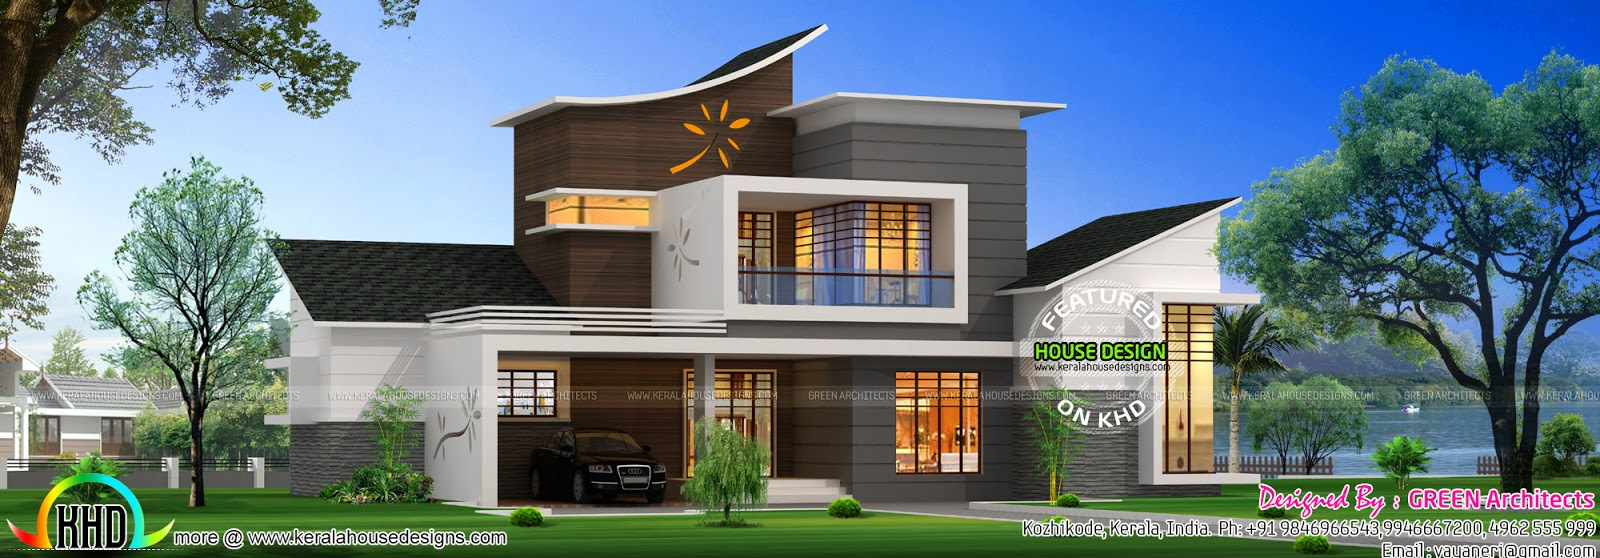 Fusion home design plan homes design plans for Home plans and designs with photos